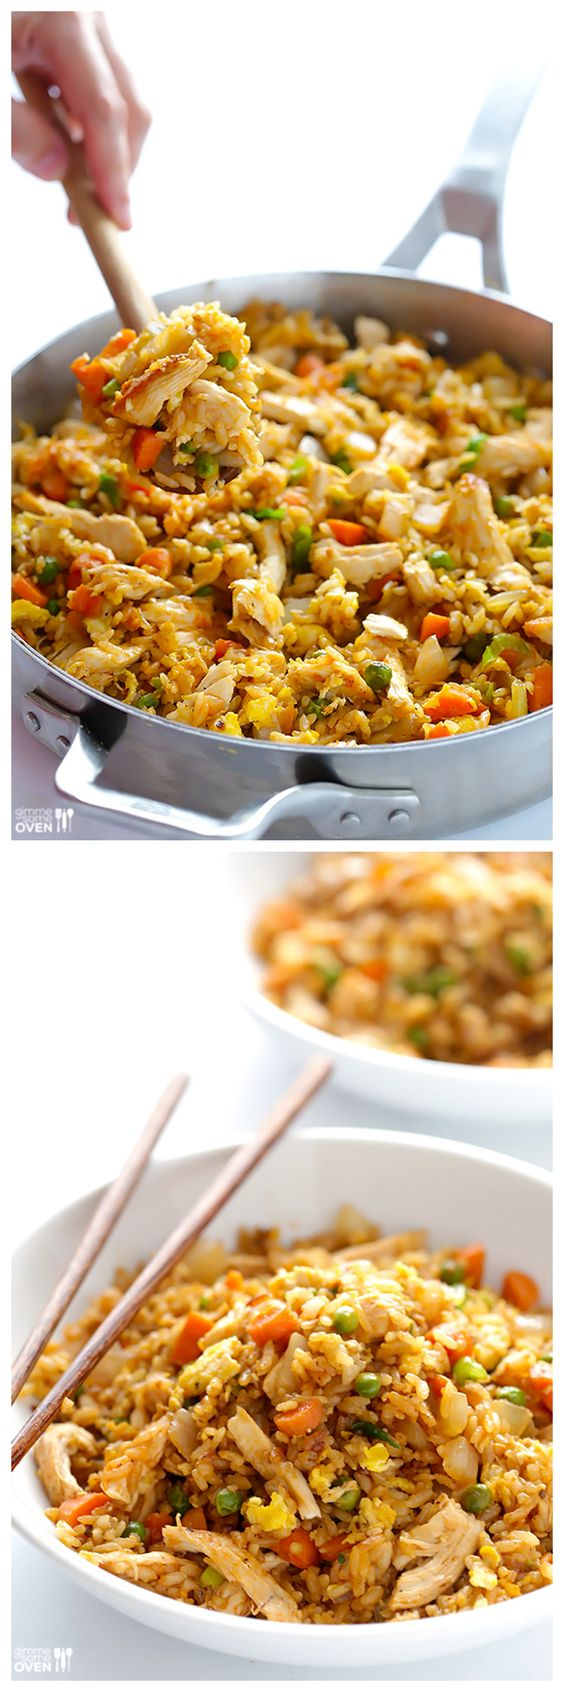 how to make easy fried rice with chicken